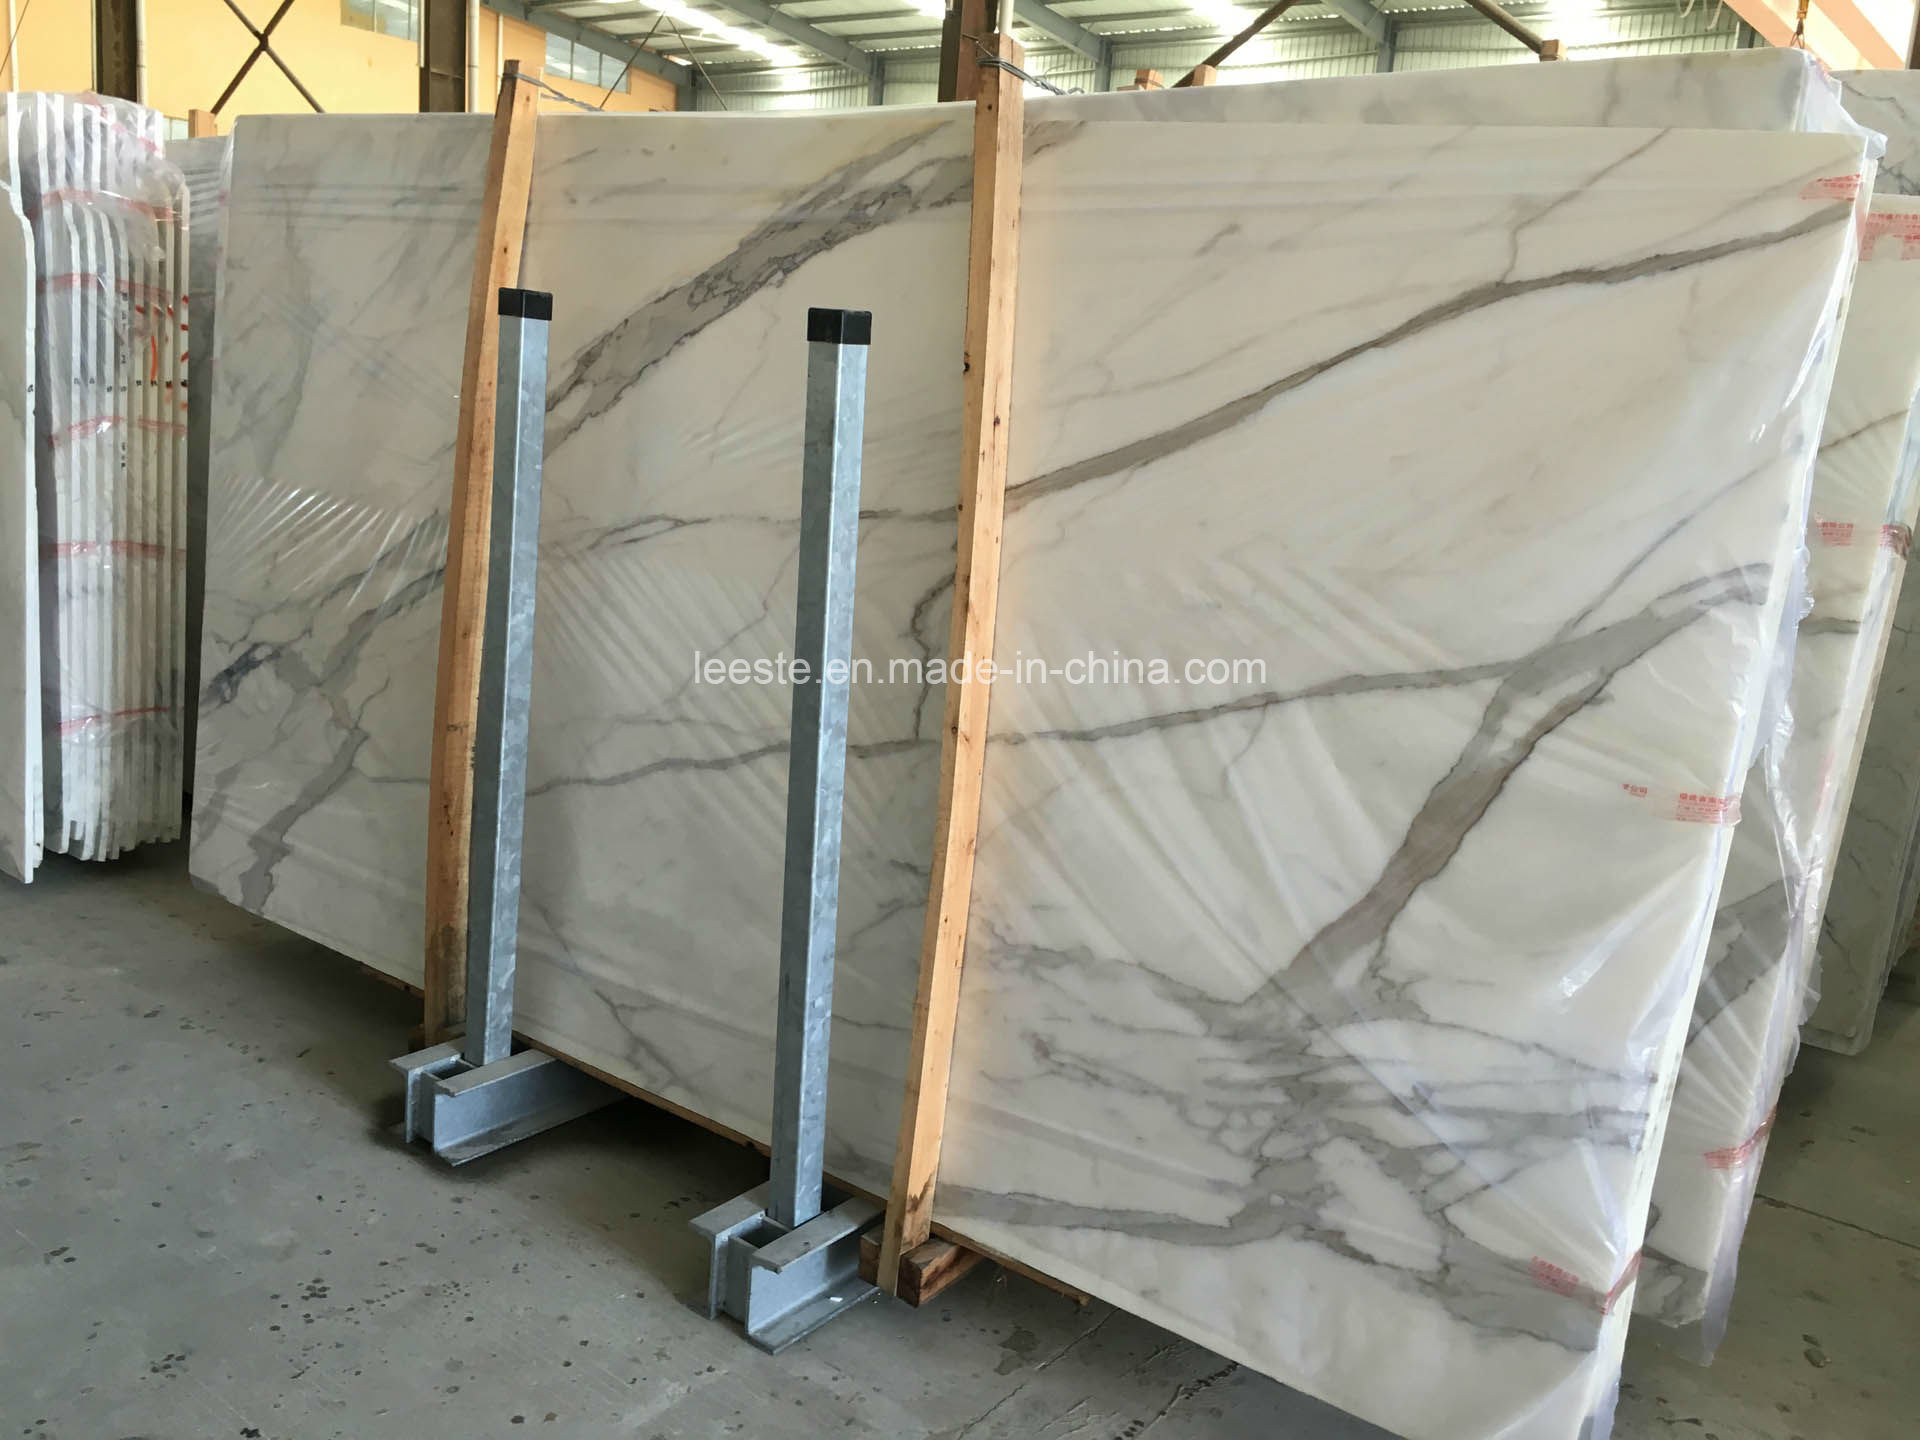 High Quality Calacatta White Marble, Tile and Slab Marble